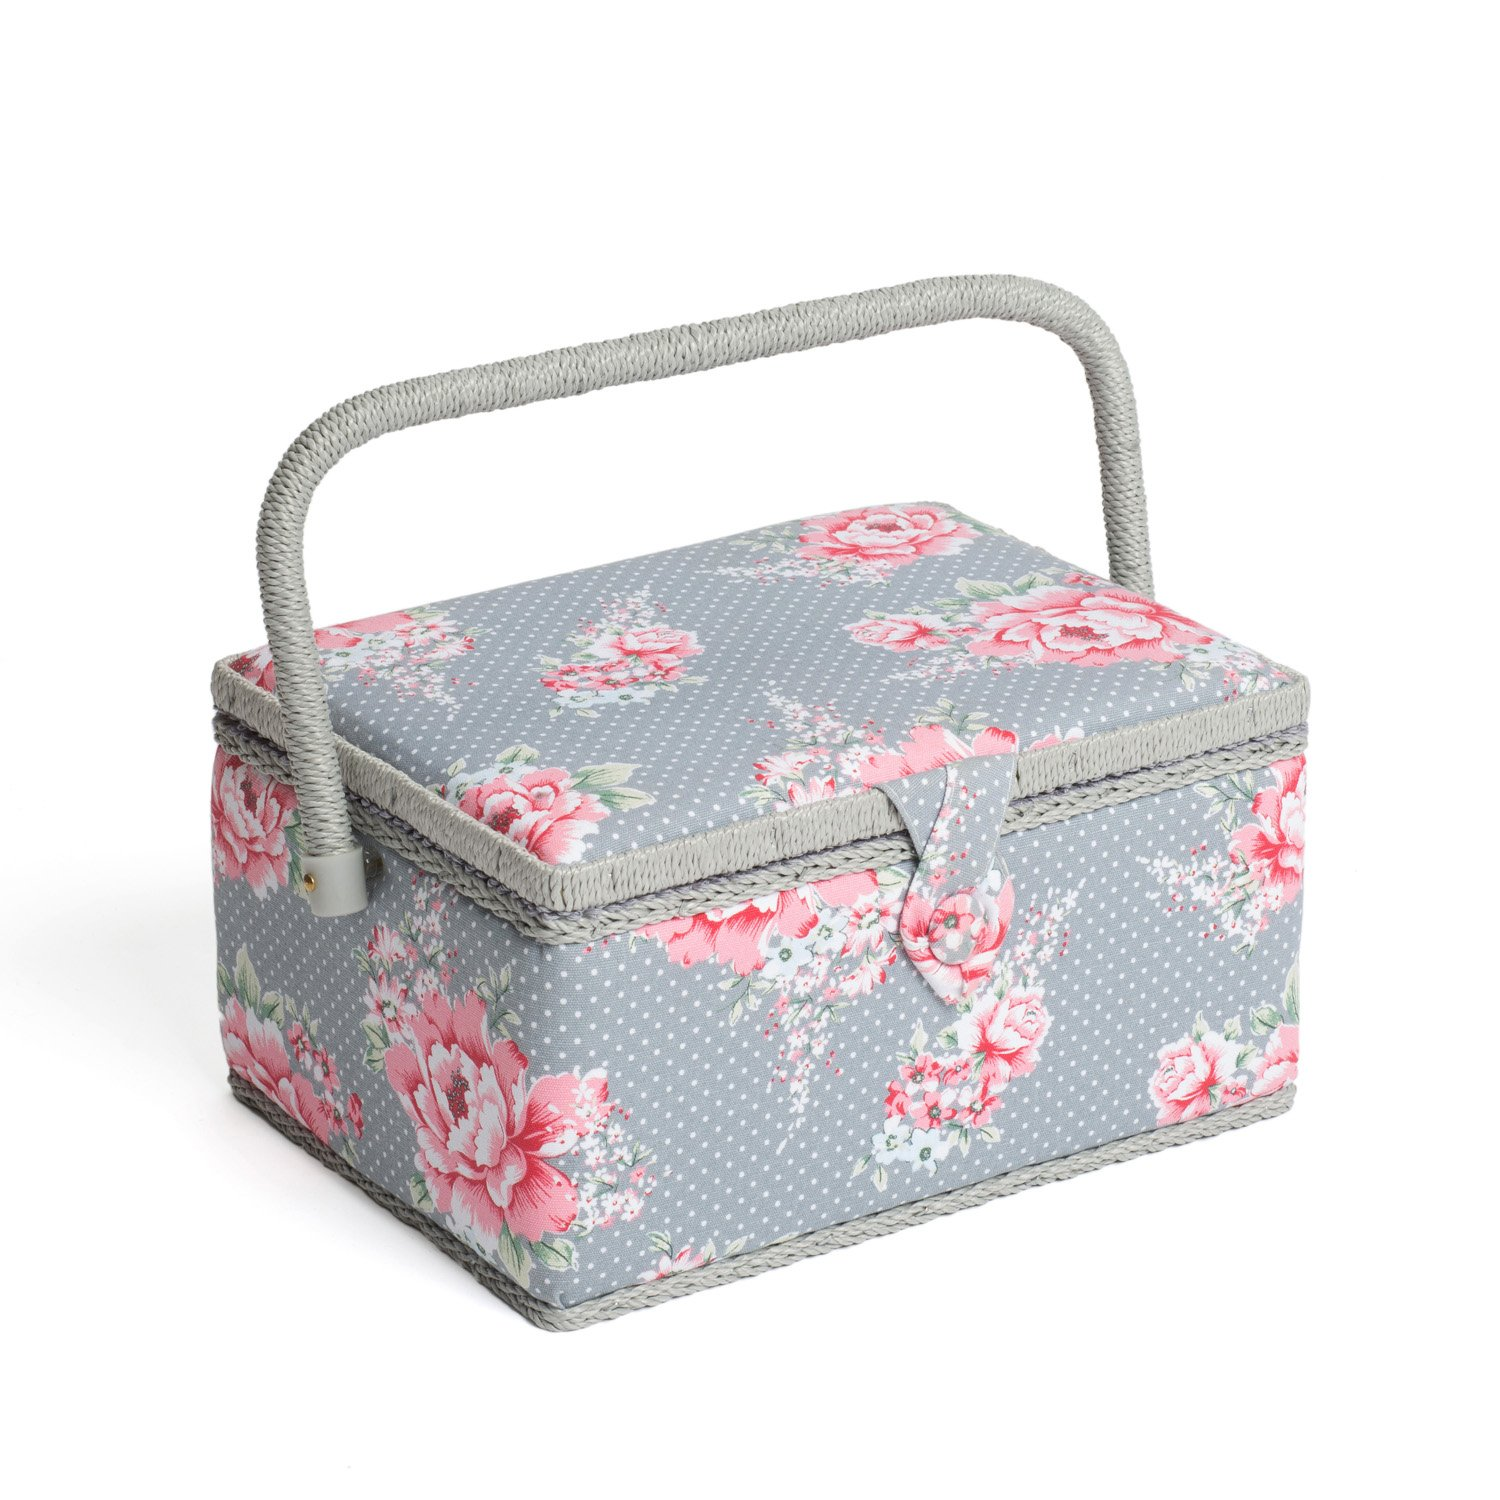 Hobbygift Groves Exclusive Print Collection Sewing Box, Cotton Blend, Beautiful Bloom, Medium MRM\190